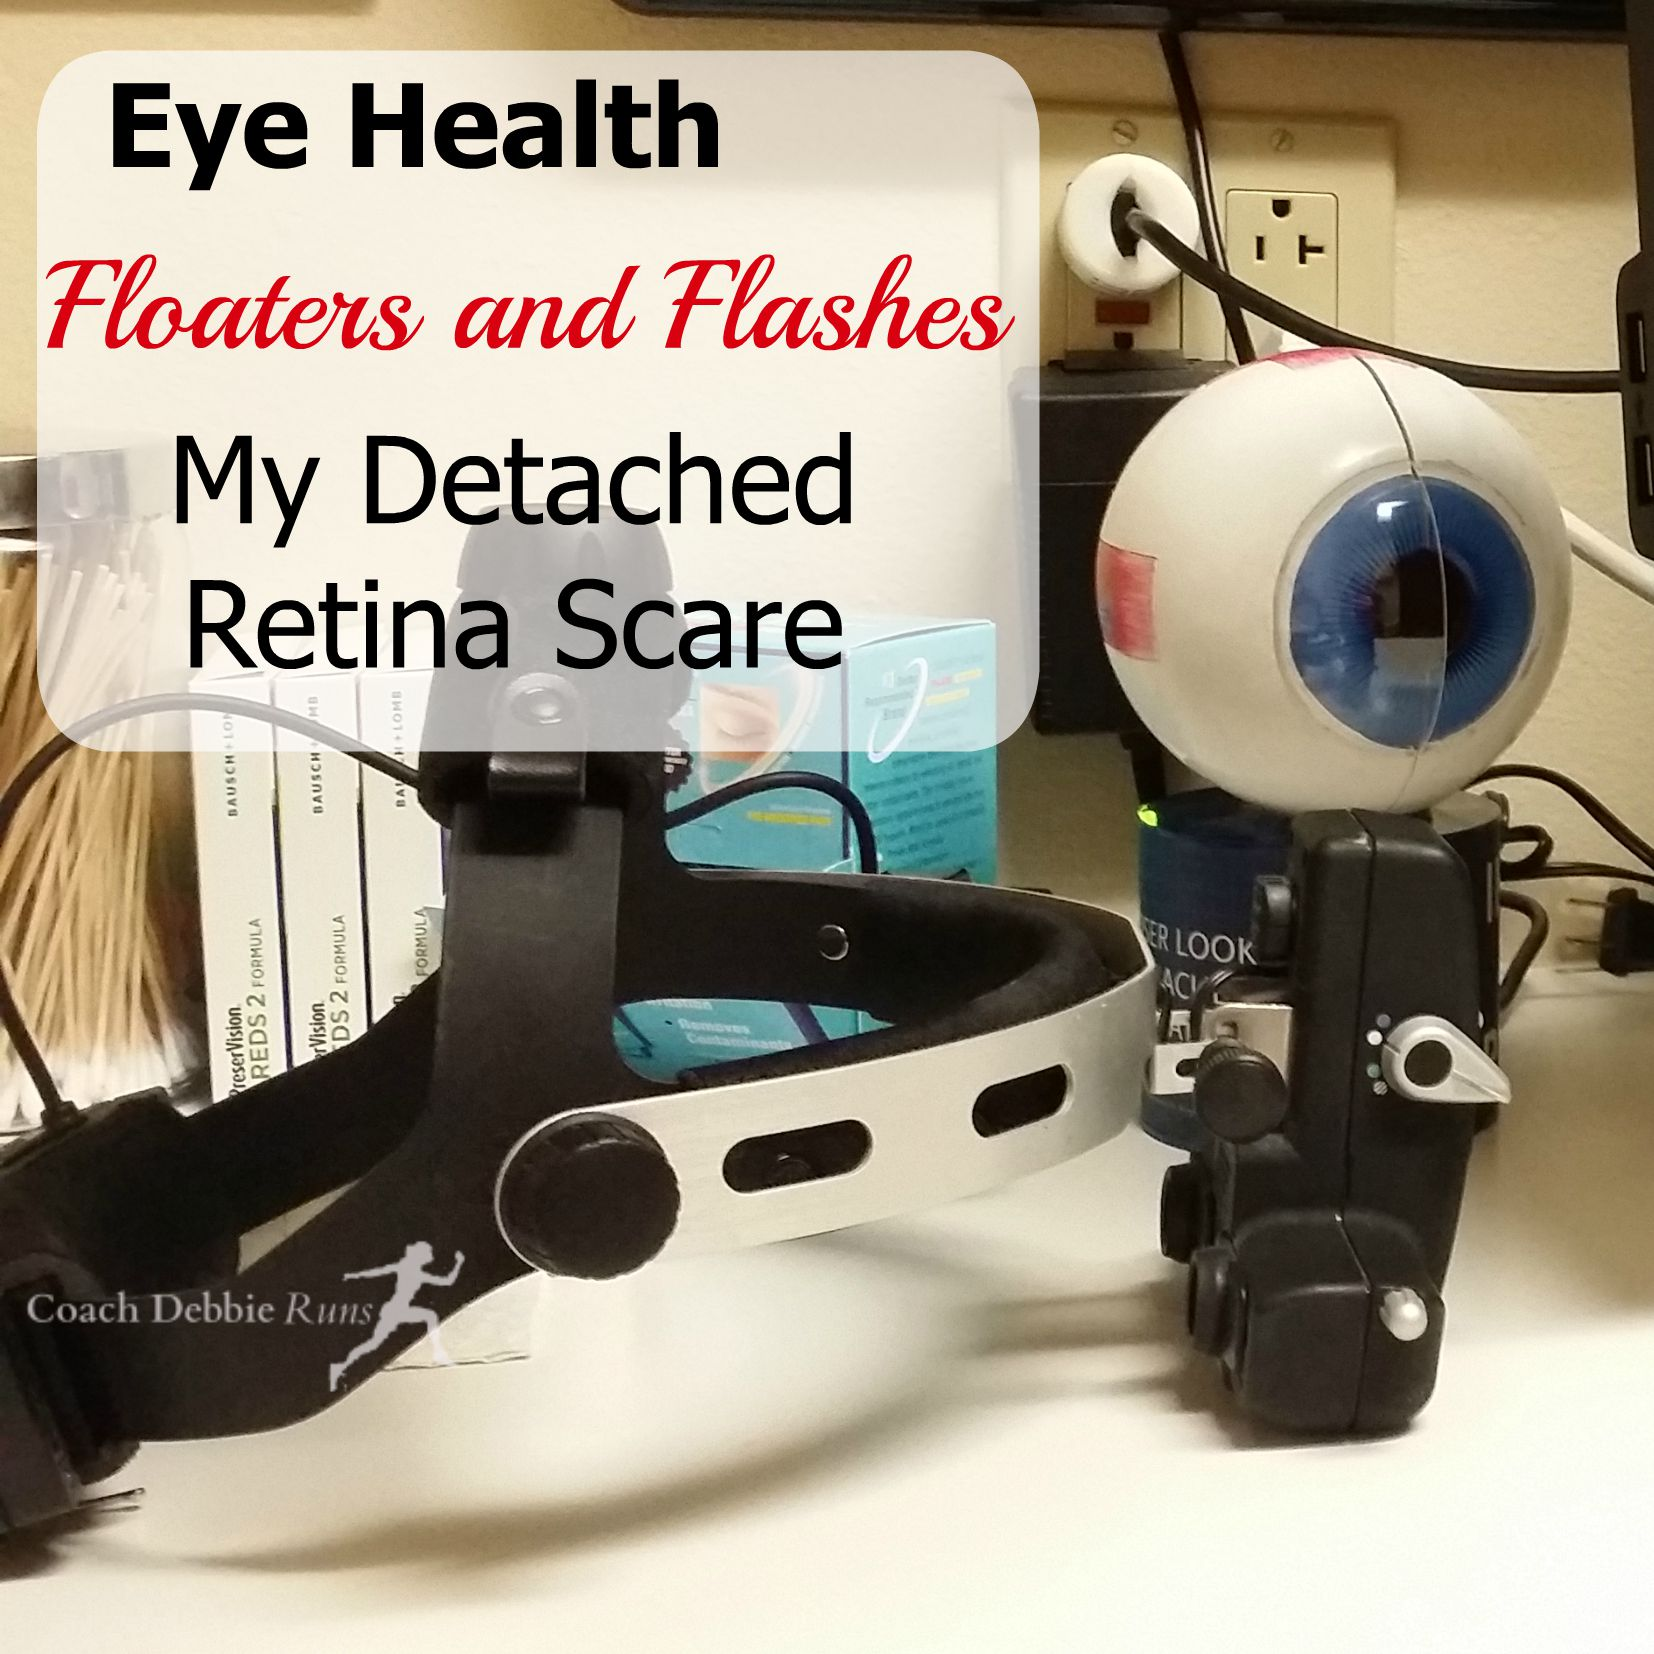 Floaters and Flashes: My Detached Retina Scare